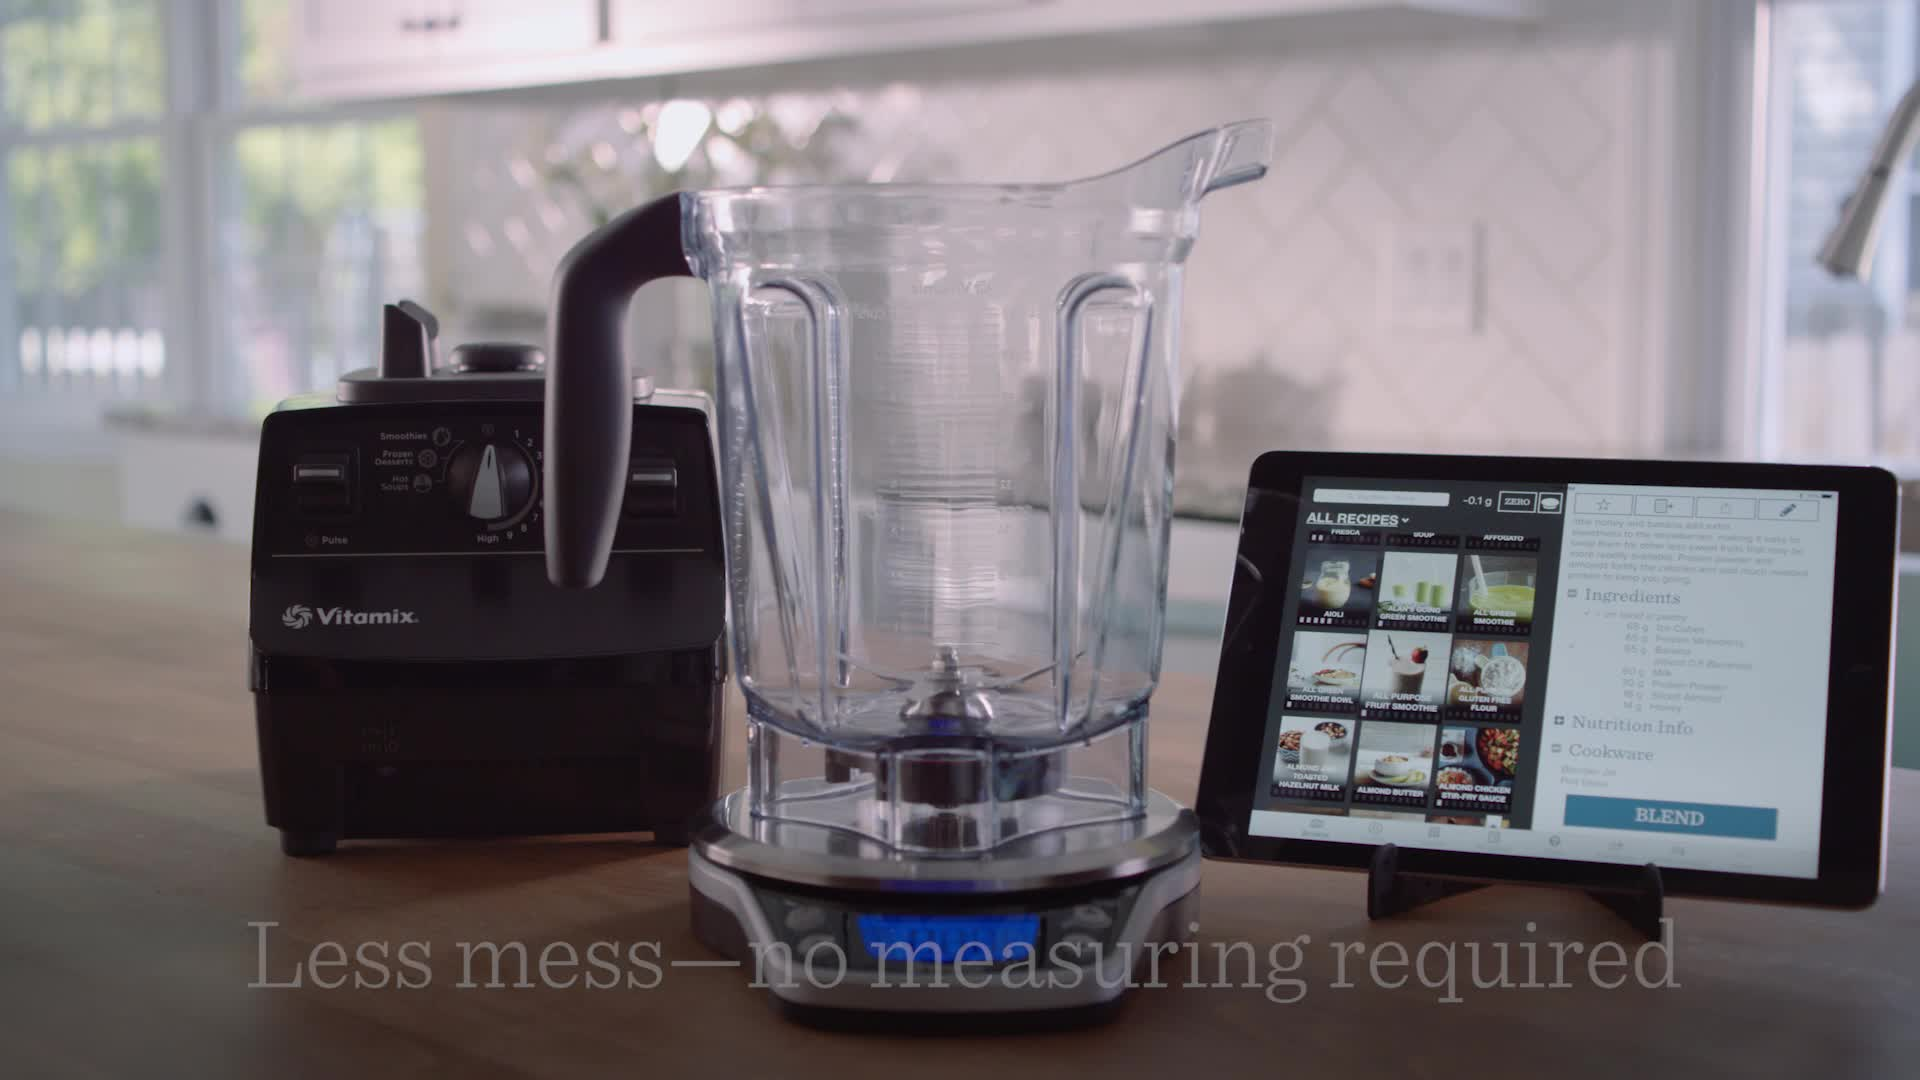 """With the Vitamix Perfect Blend Smart Scale & Recipe App, users choose a recipe, adjust it to their desired serving size or number of calories, and simply pour ingredients directly into their Vitamix container for precise measurement - the virtual container fills up in real time and an audible """"ding!"""" signals when to stop pouring."""